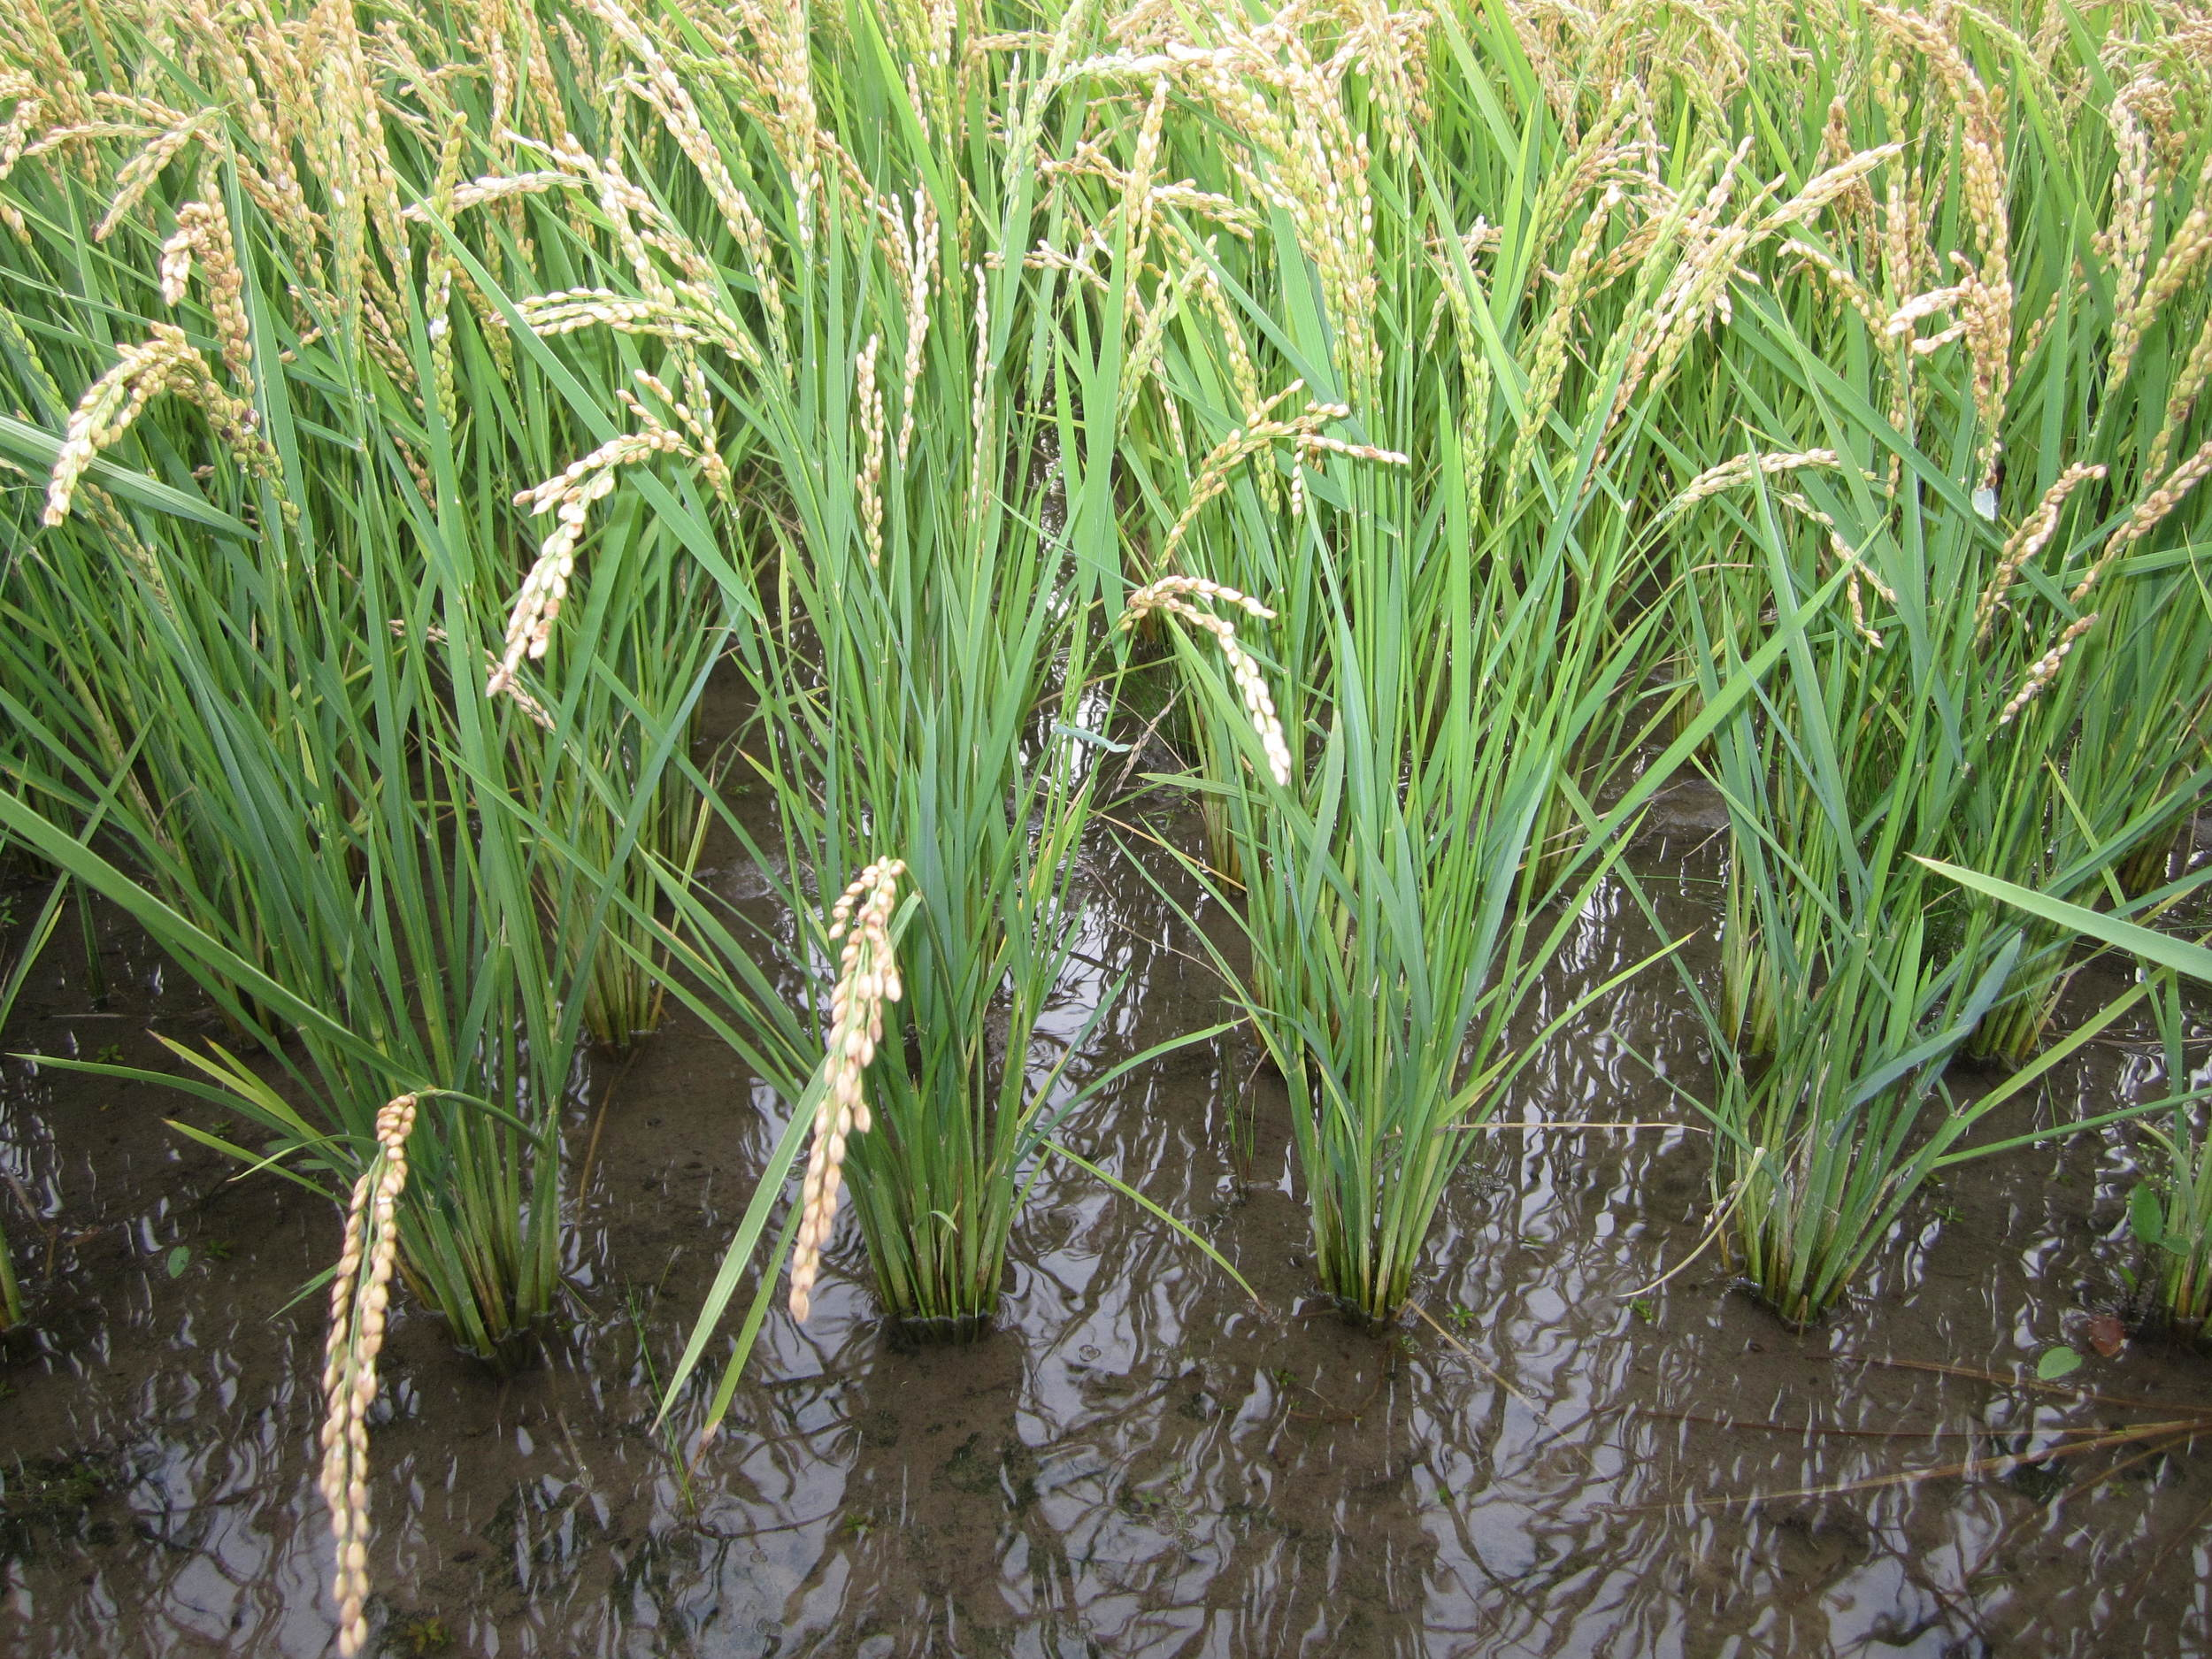 By September, each transplant grows into a beautiful rice plant with multiple tillers and full grain heads